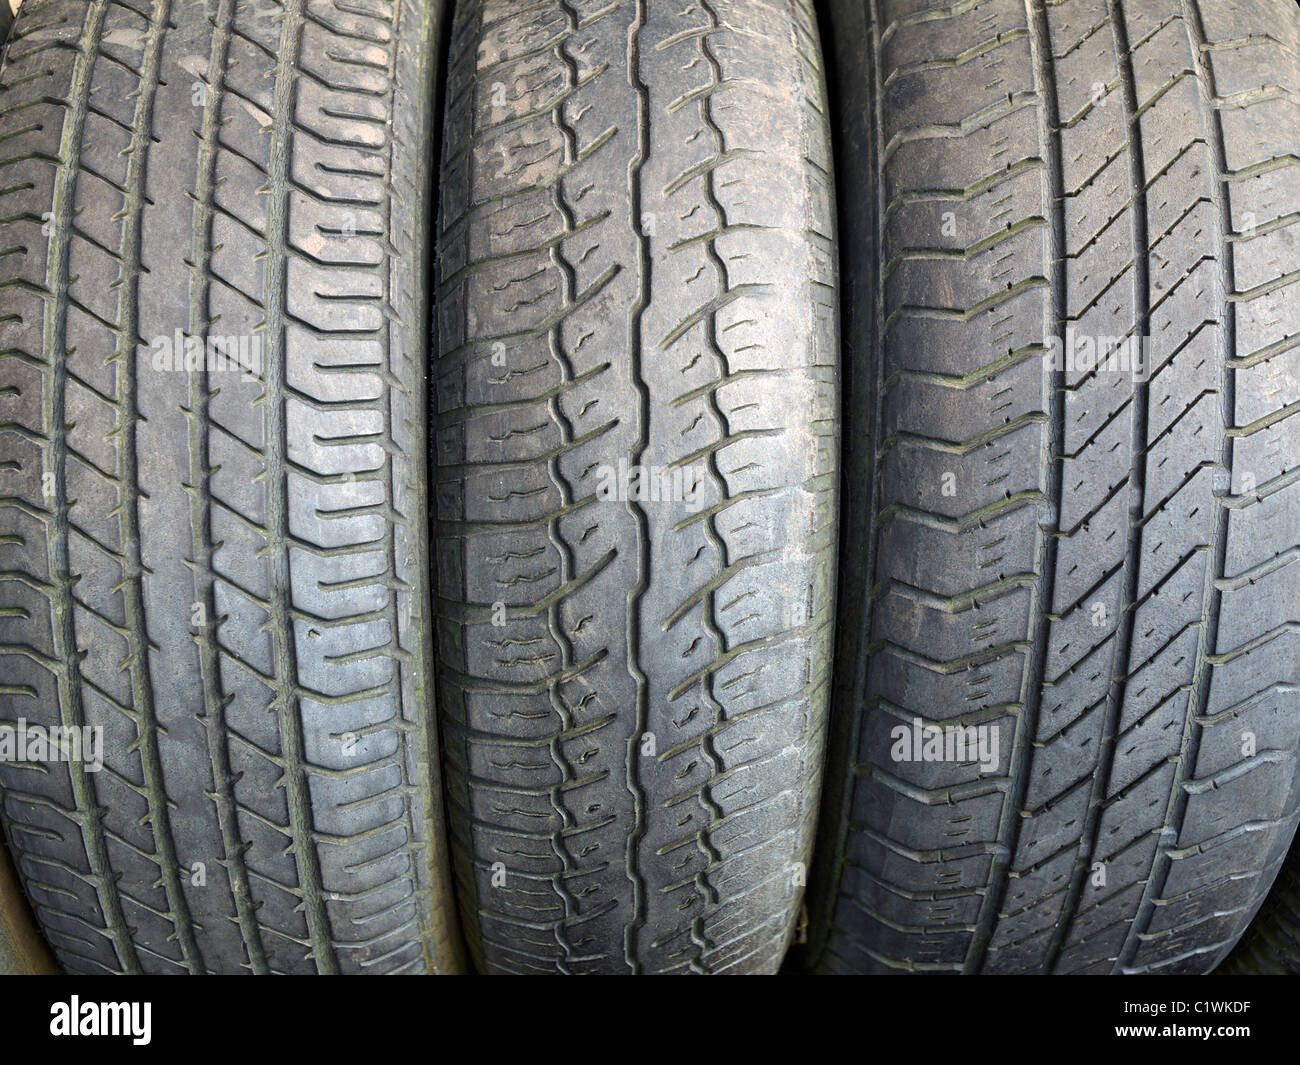 Worn car tyres in a row at the Eden project St Austell Cornwall UK - Stock Image